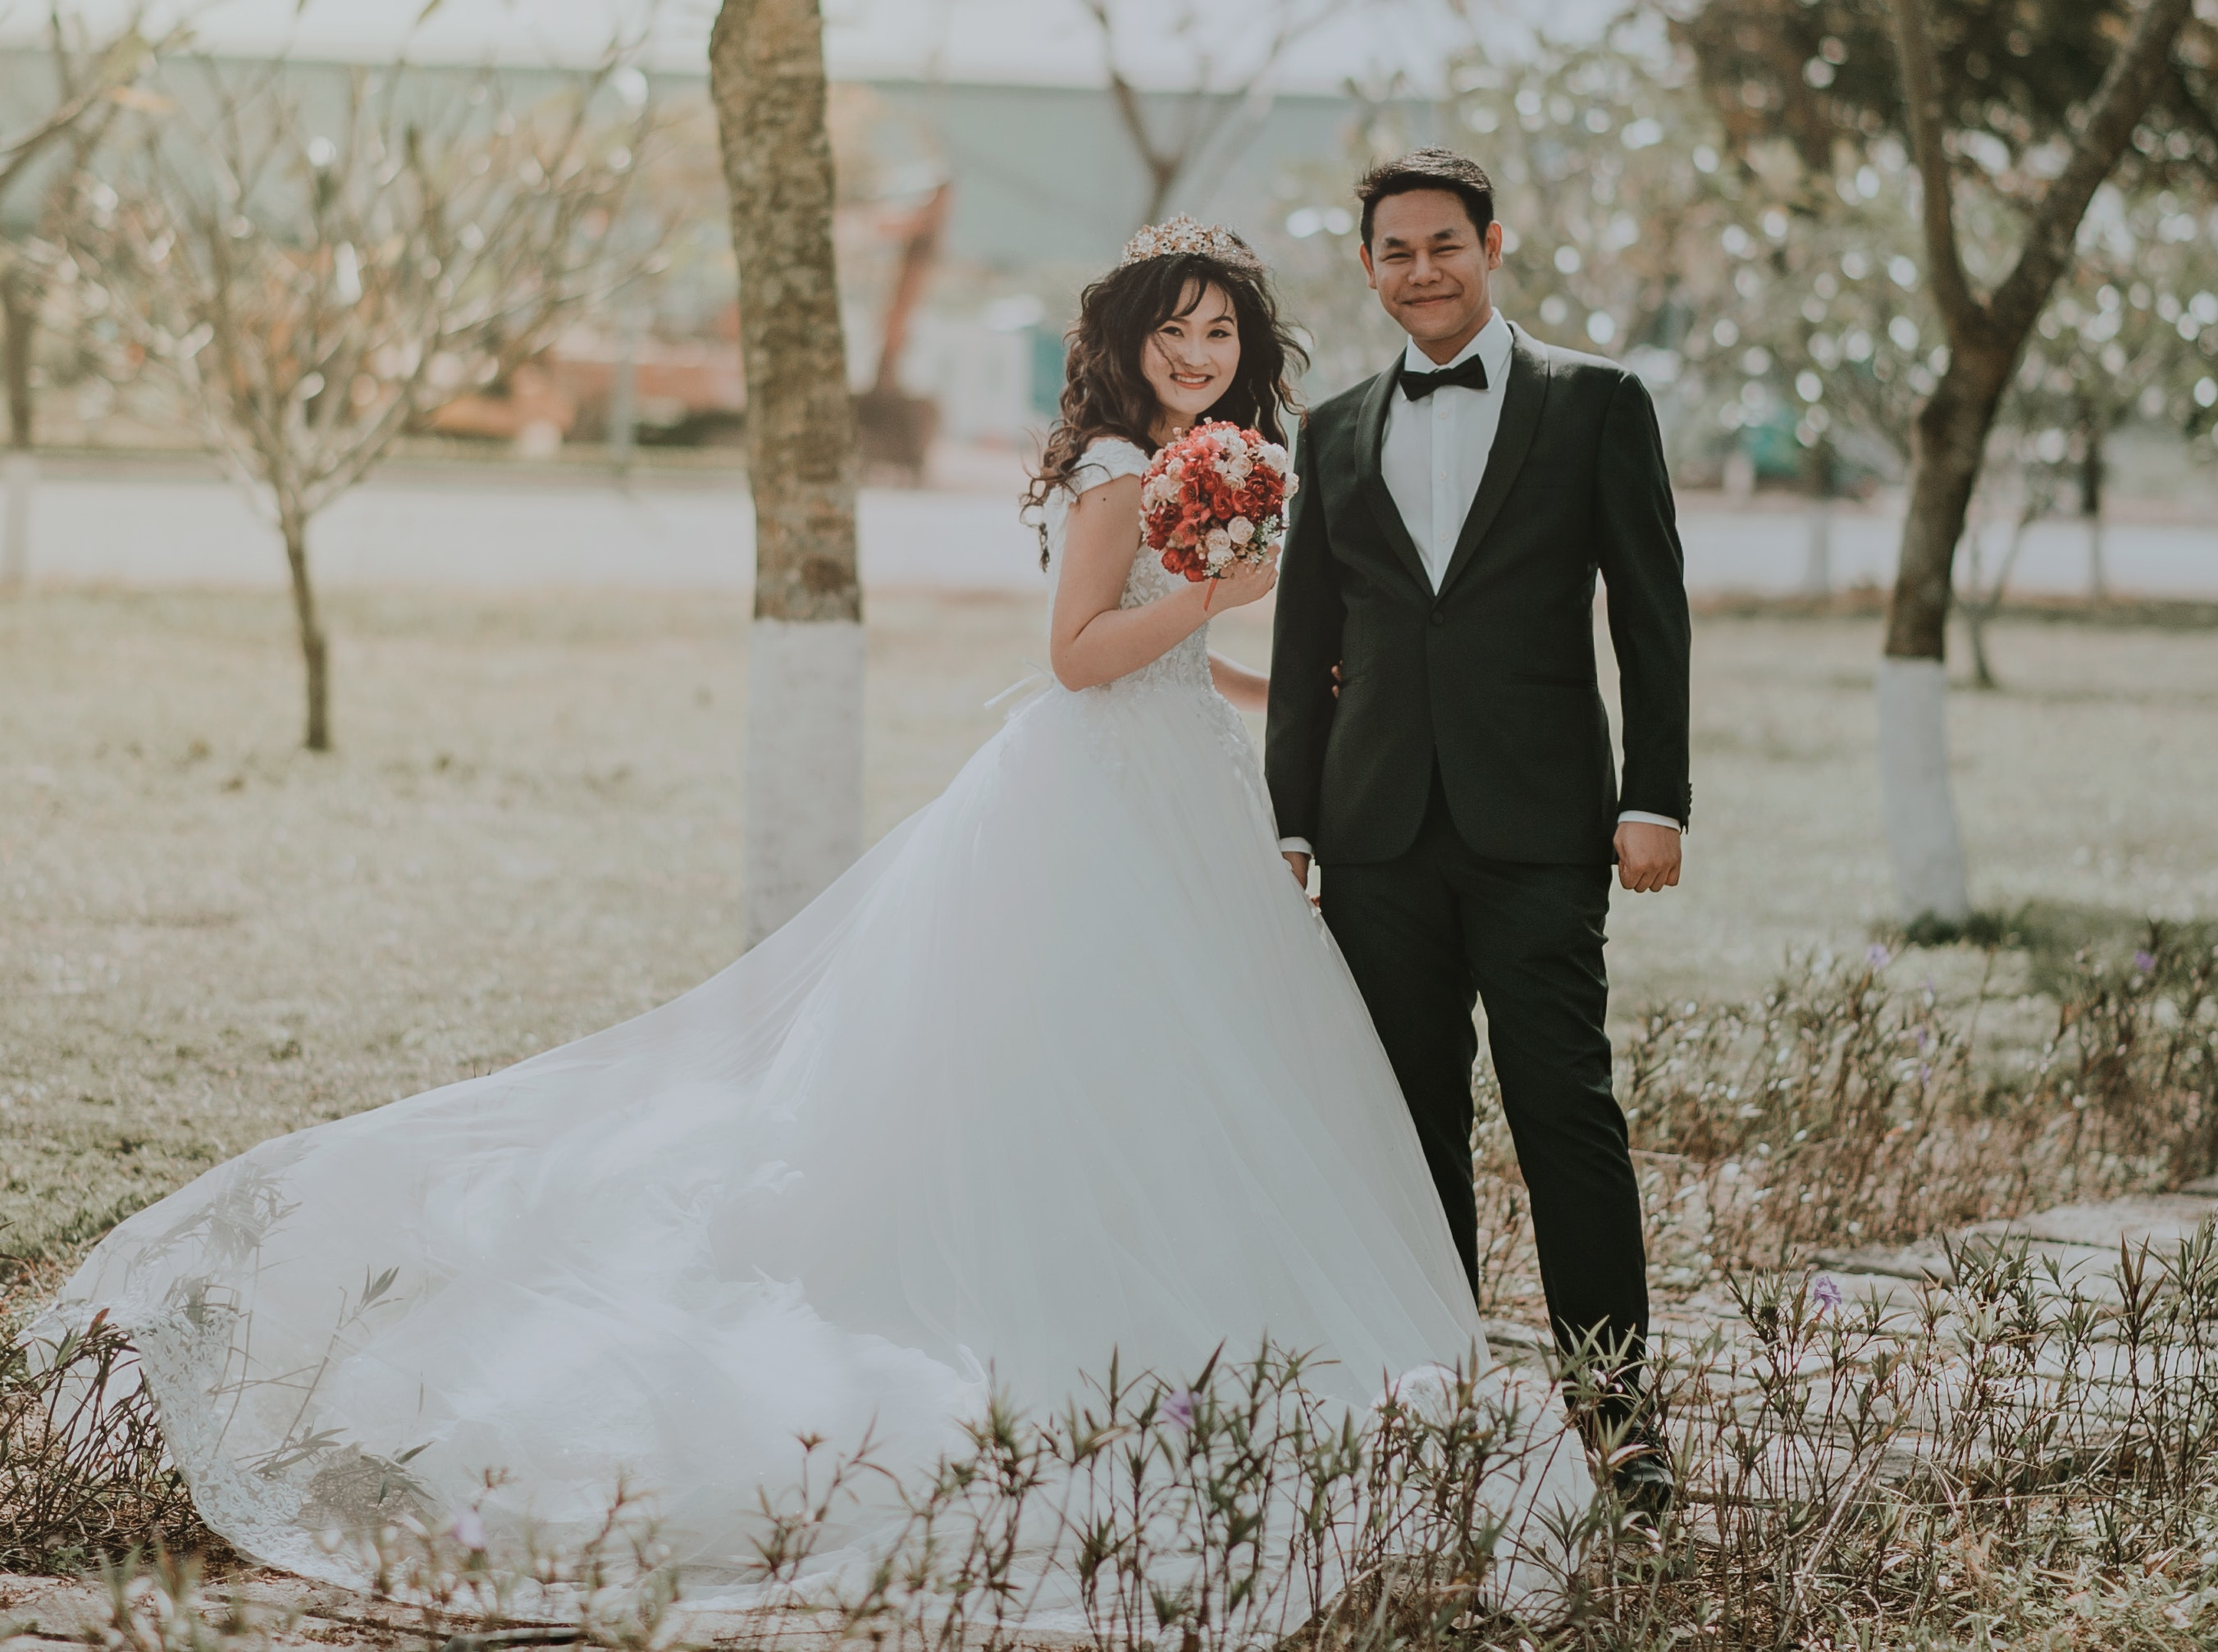 Woman wearing white wedding ball beside man wearing black notch-lapel suit on pathway near the green grass field photo